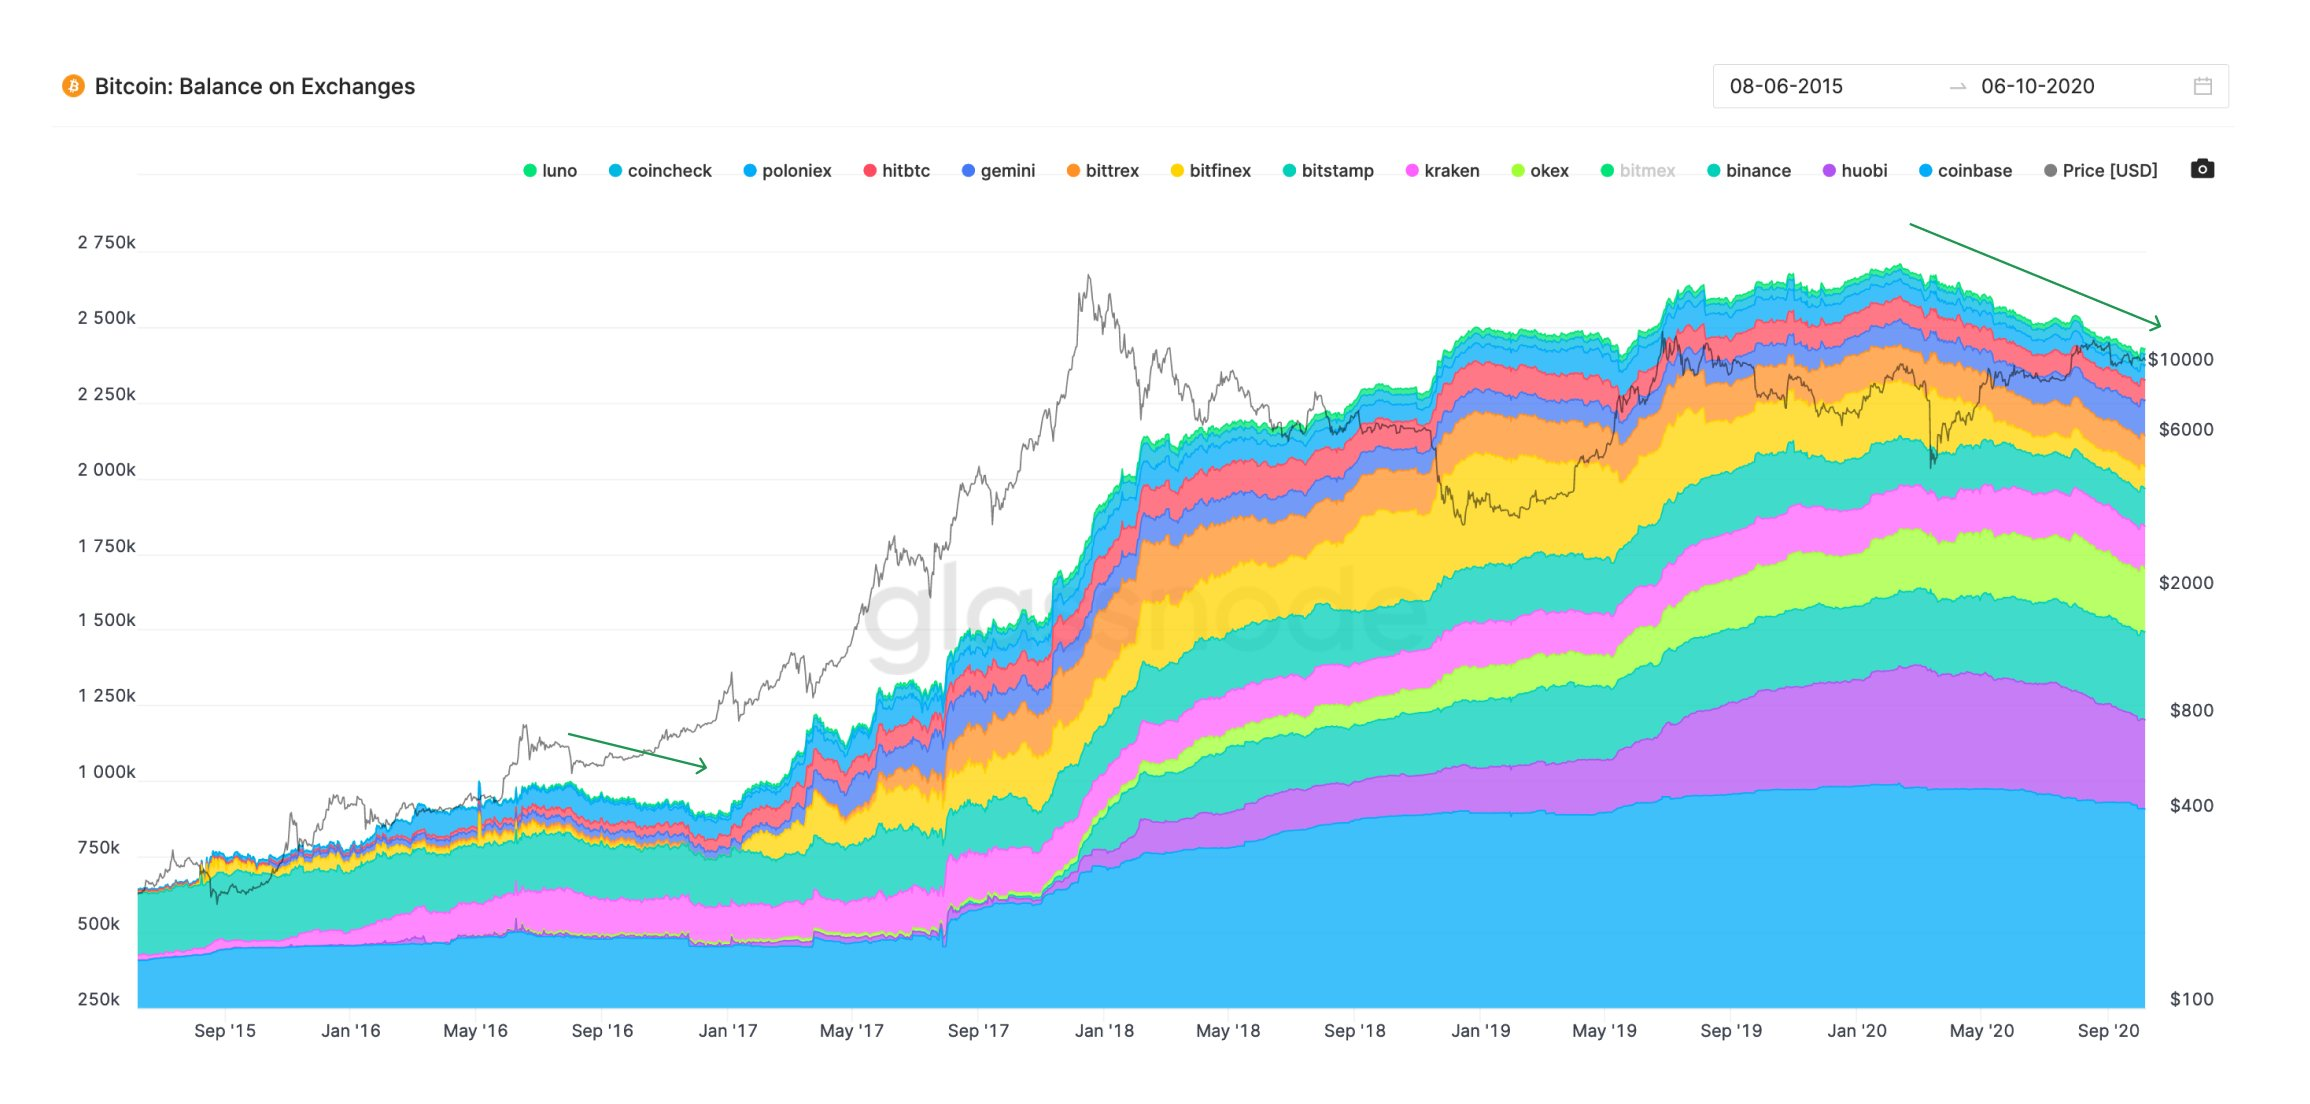 Bitcoin balance on spot exchanges on the decline